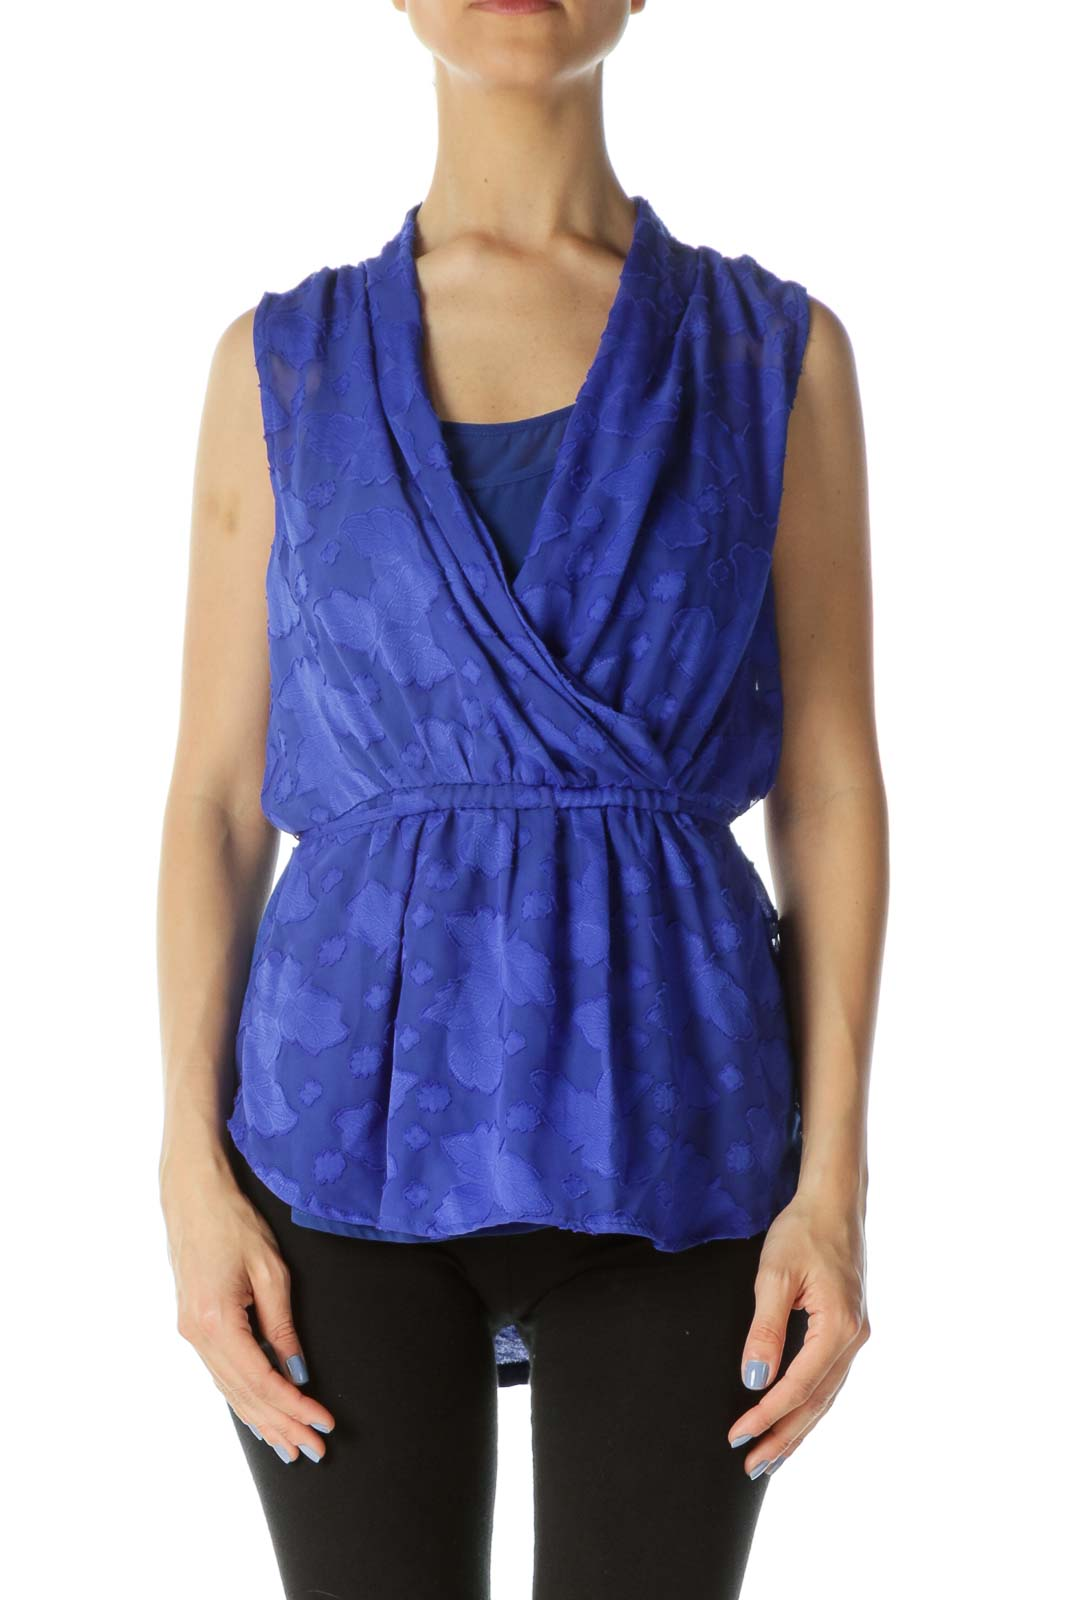 Royal-Blue Textured-Leaves Mixed-Media Sleeveless Top Front